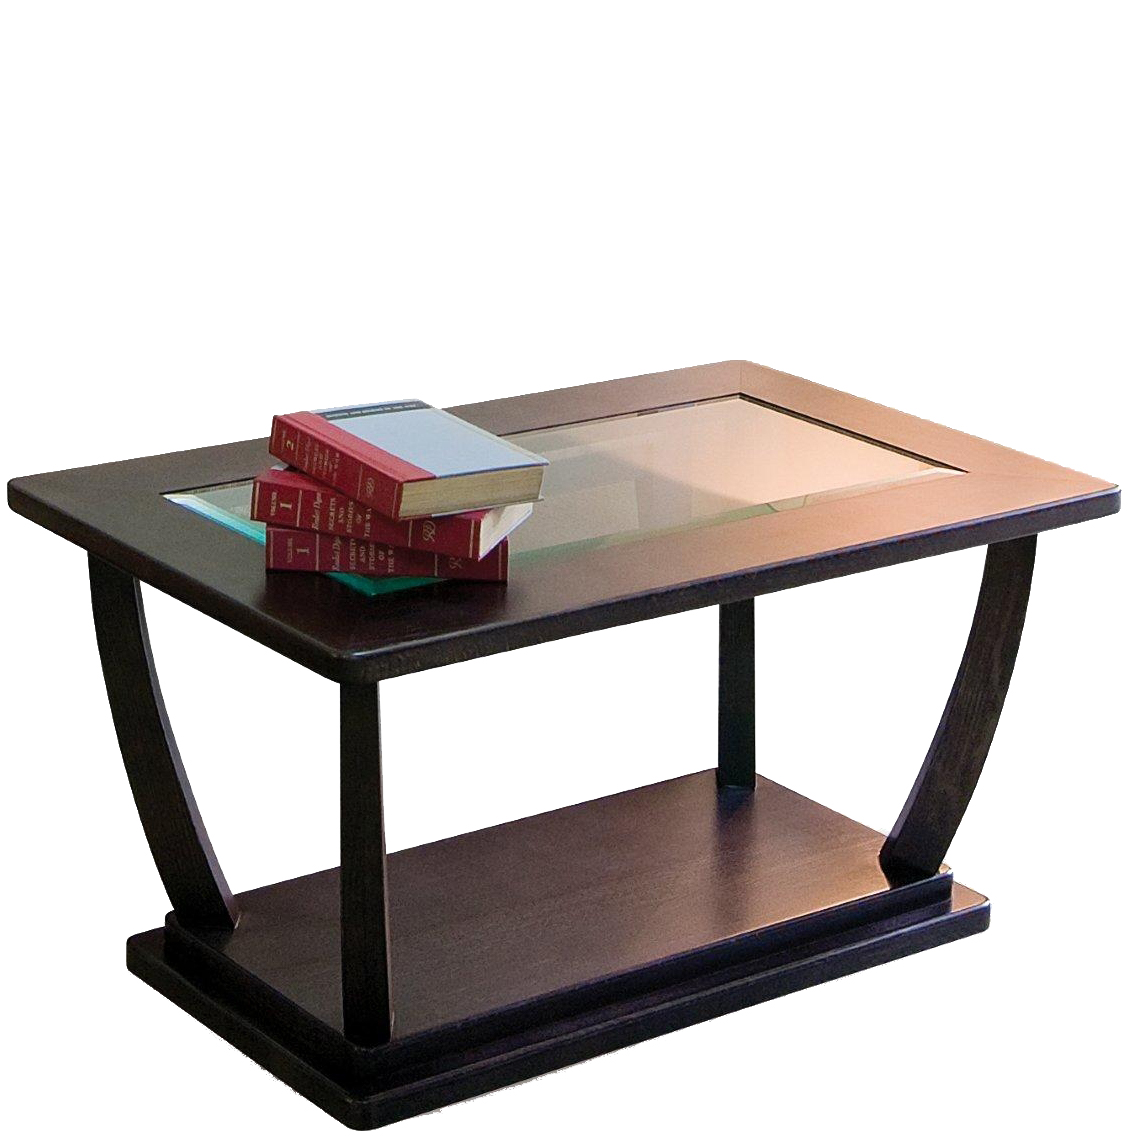 Rectangular coffee table with 3 books stacked on it